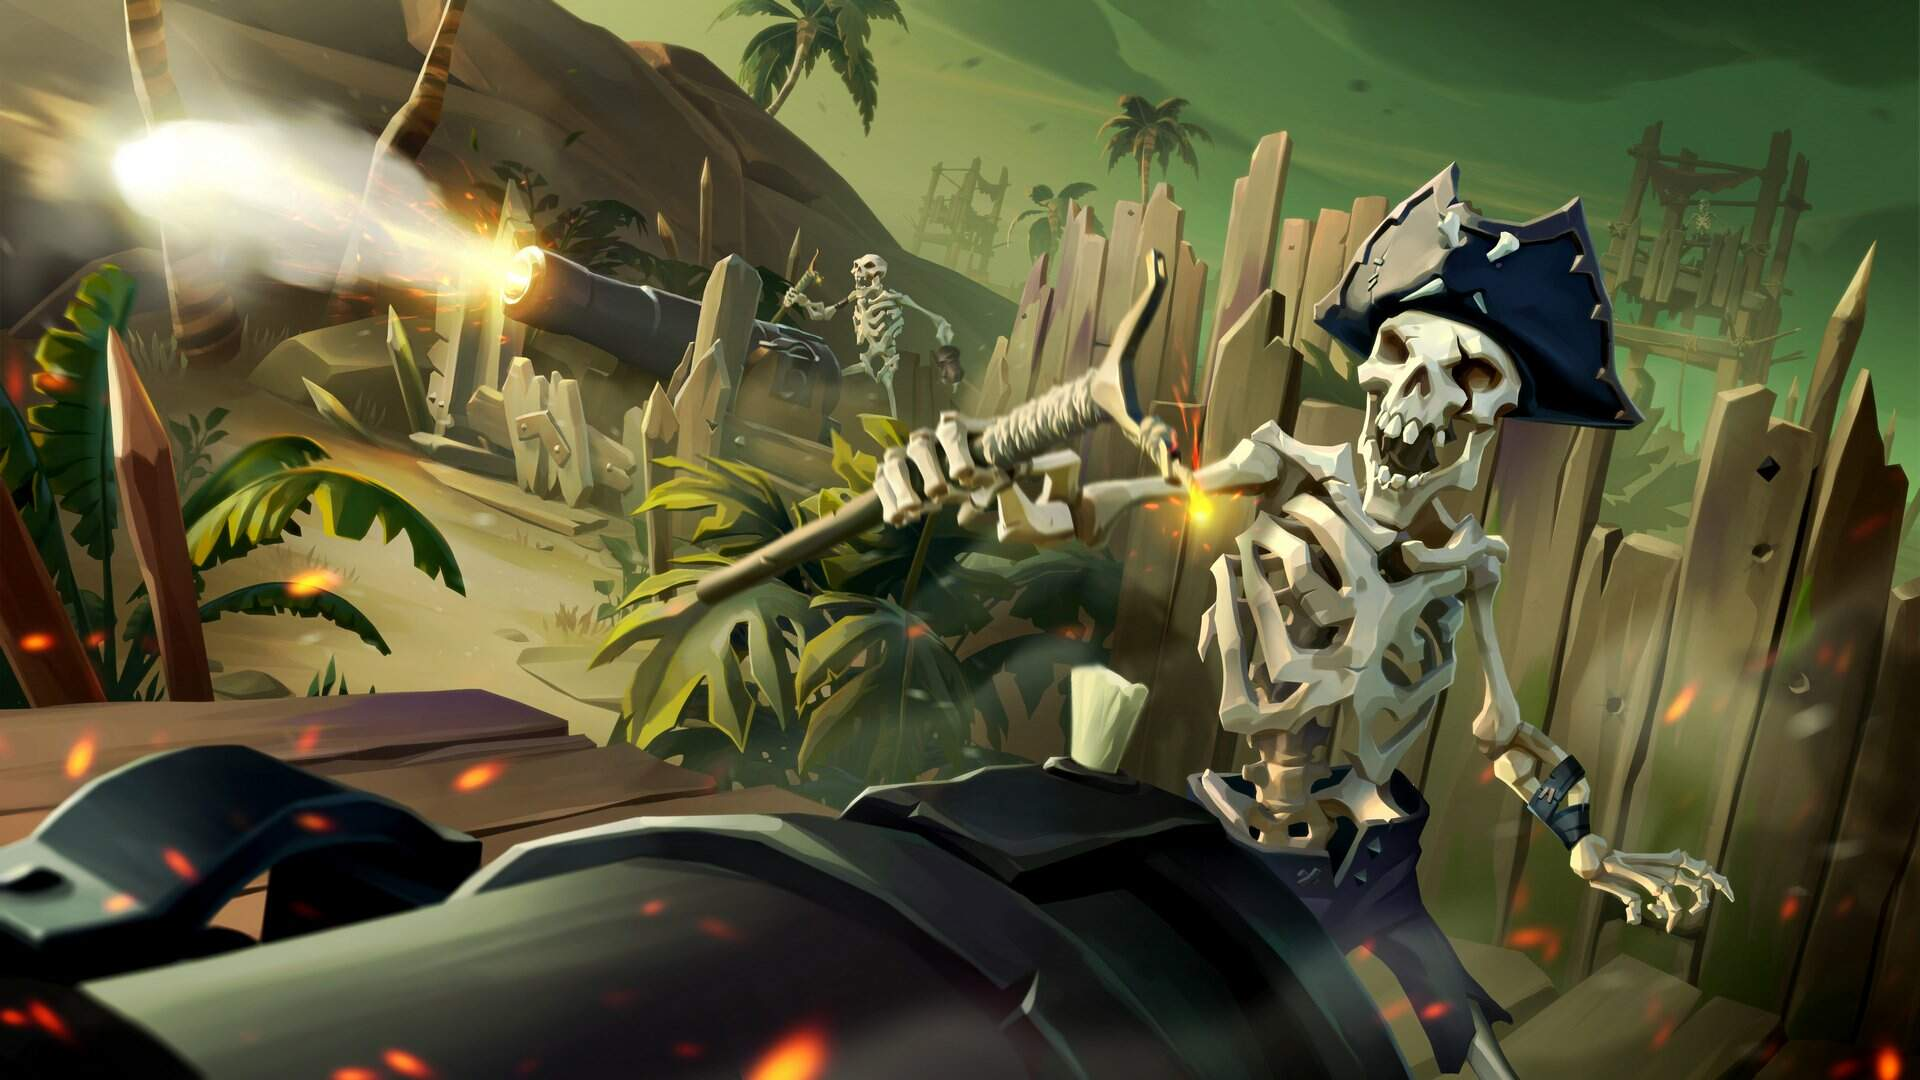 Sea of Thieves: Where to Find and Use Ashen Keys and Ashen Chests